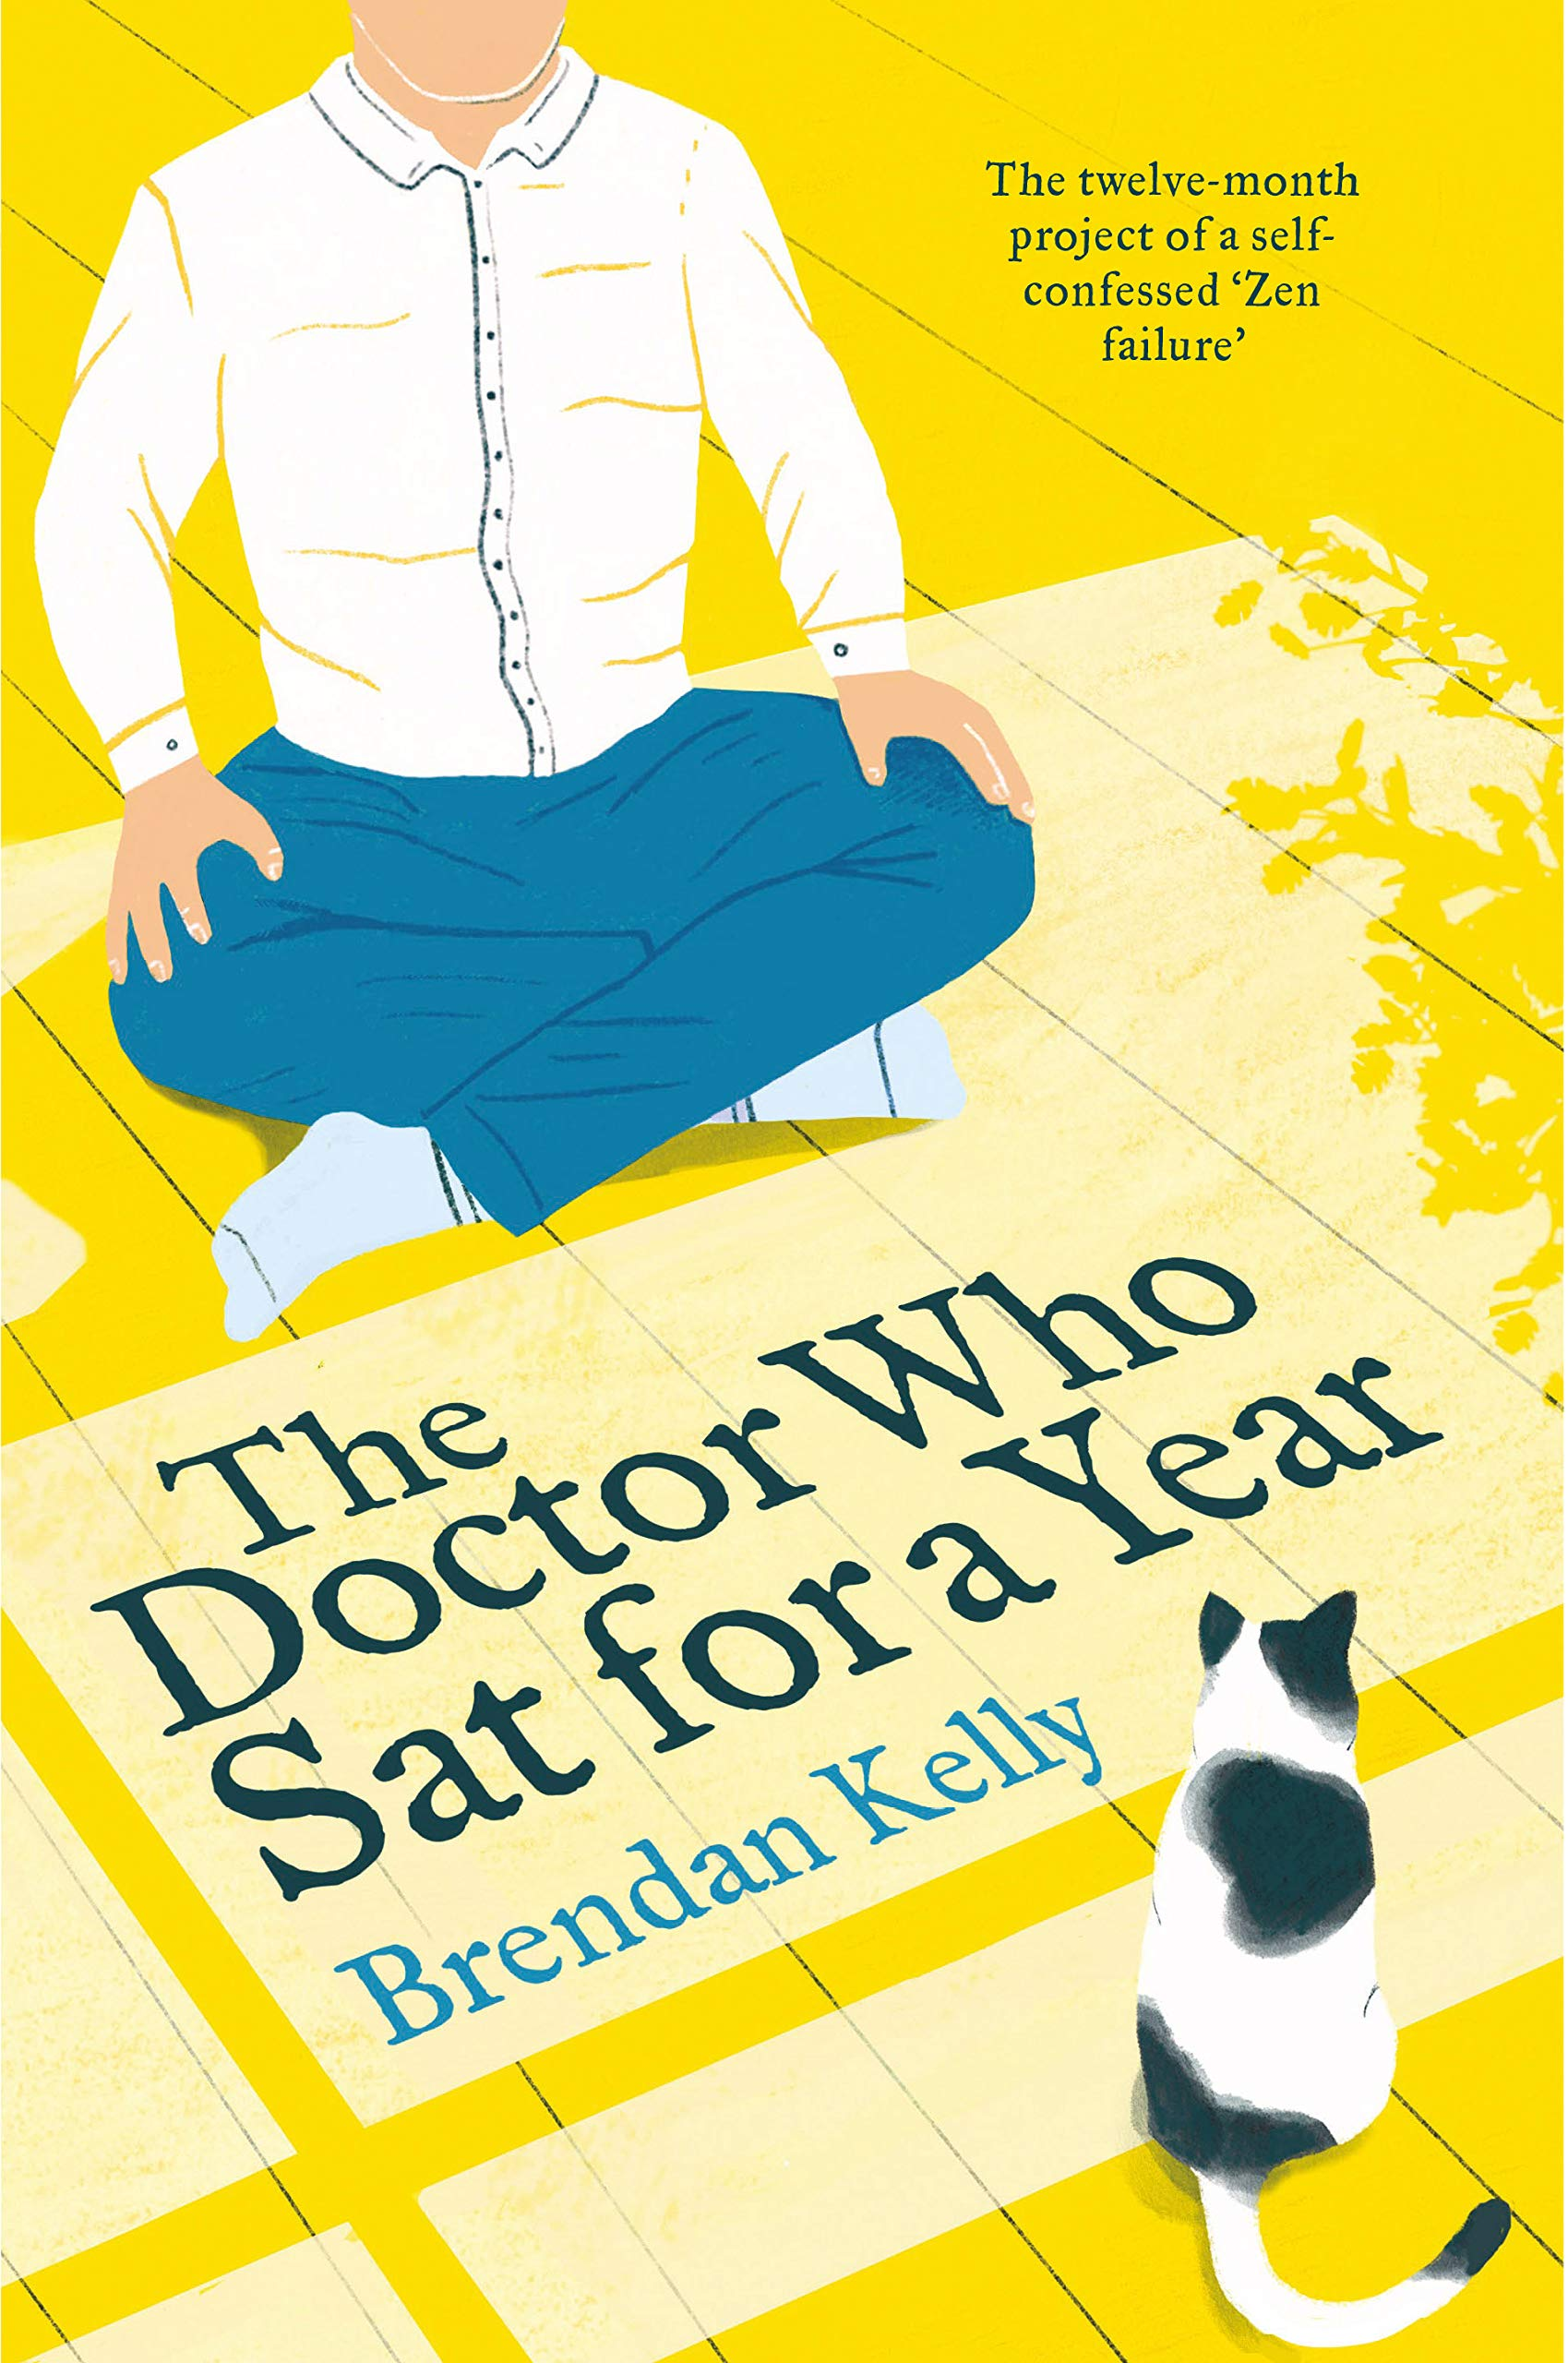 The Doctor Who Sat for a Year: Amazon co uk: Brendan Kelly